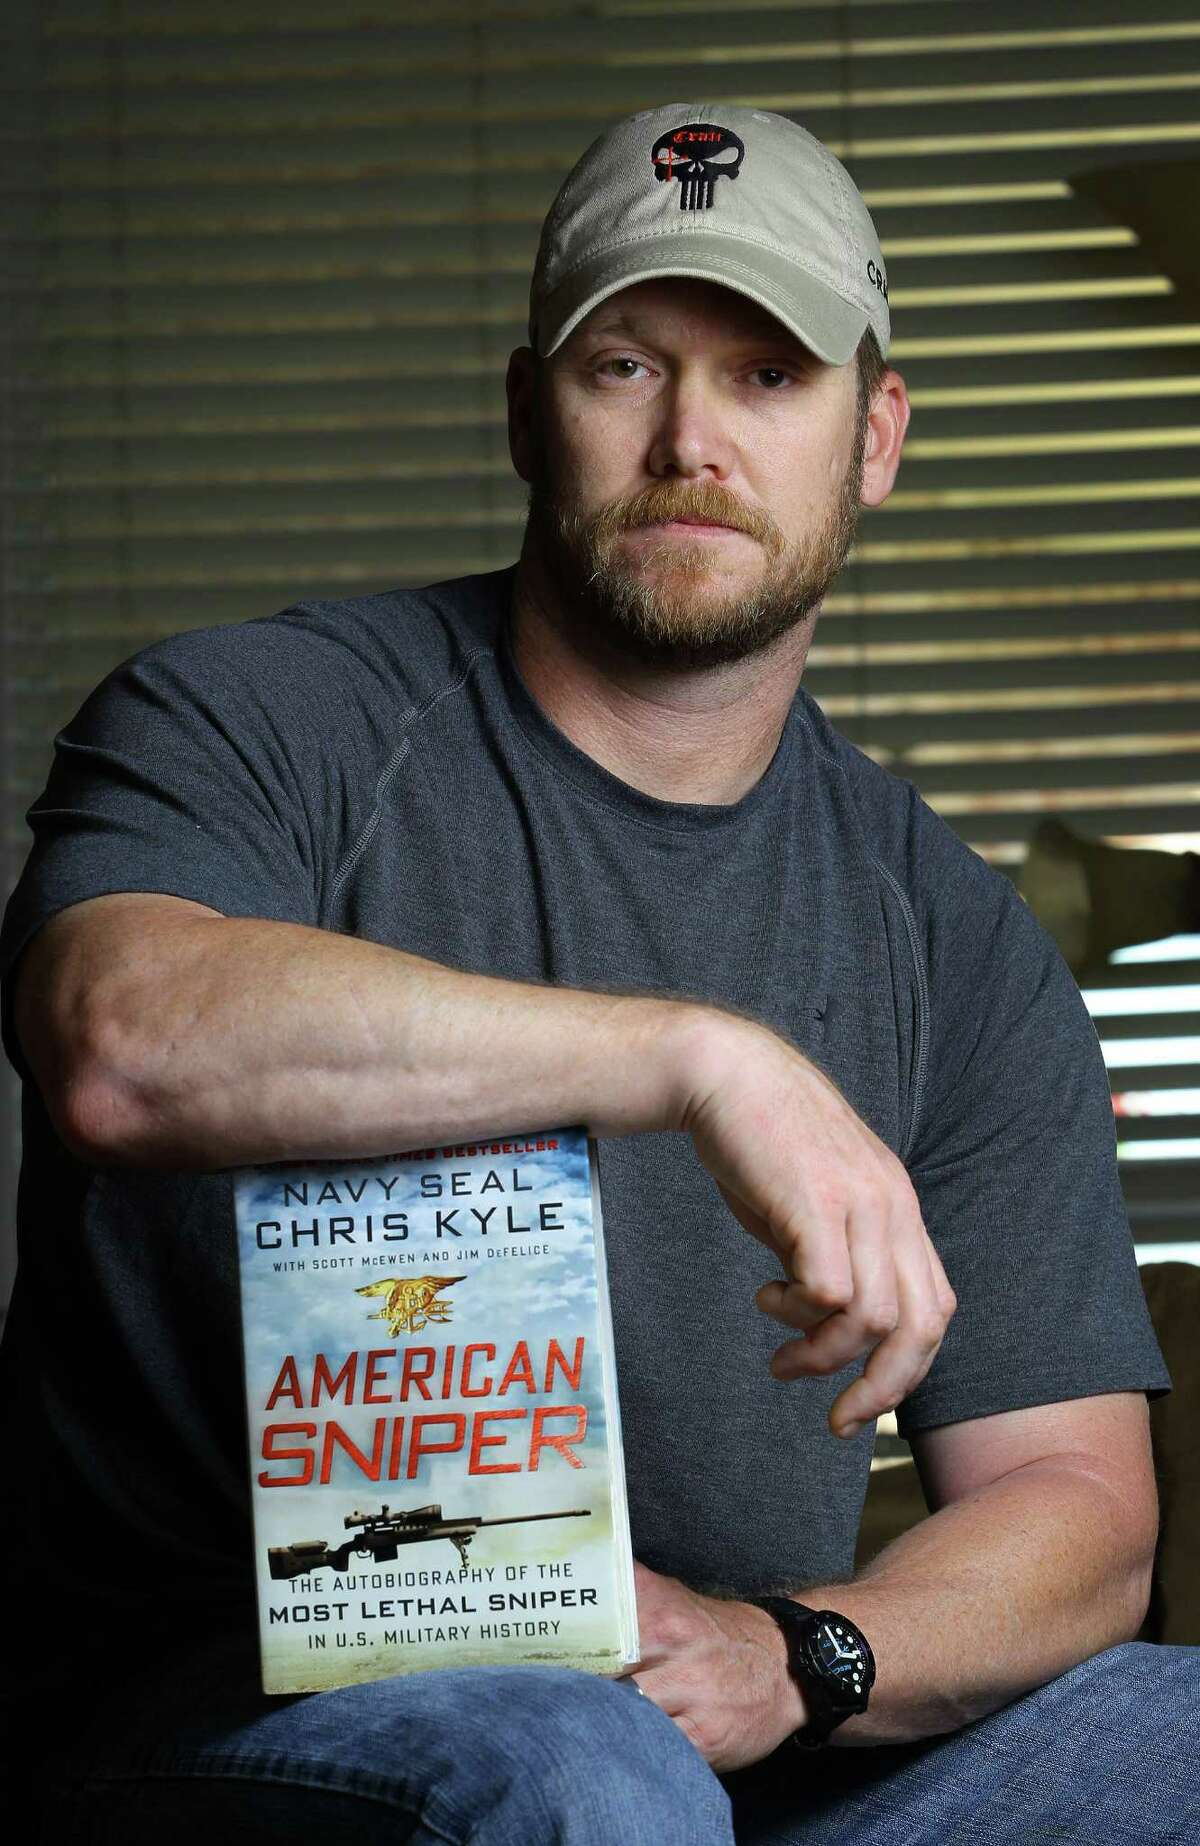 FILE - In this April 6, 2012 file photo, Chris Kyle, a former Navy SEAL and author of the book ?American Sniper,? poses in Midlothian, Texas. Kyle and his friend Chad Littlefield were fatally shot at a shooting range southwest of Fort Worth, Texas, on Saturday, Feb. 2, 2013. Former Marine Eddie Ray Routh, who came with them to the range, has been arrested for the murders. (AP Photo/The Fort Worth Star-Telegram, Paul Moseley, File)